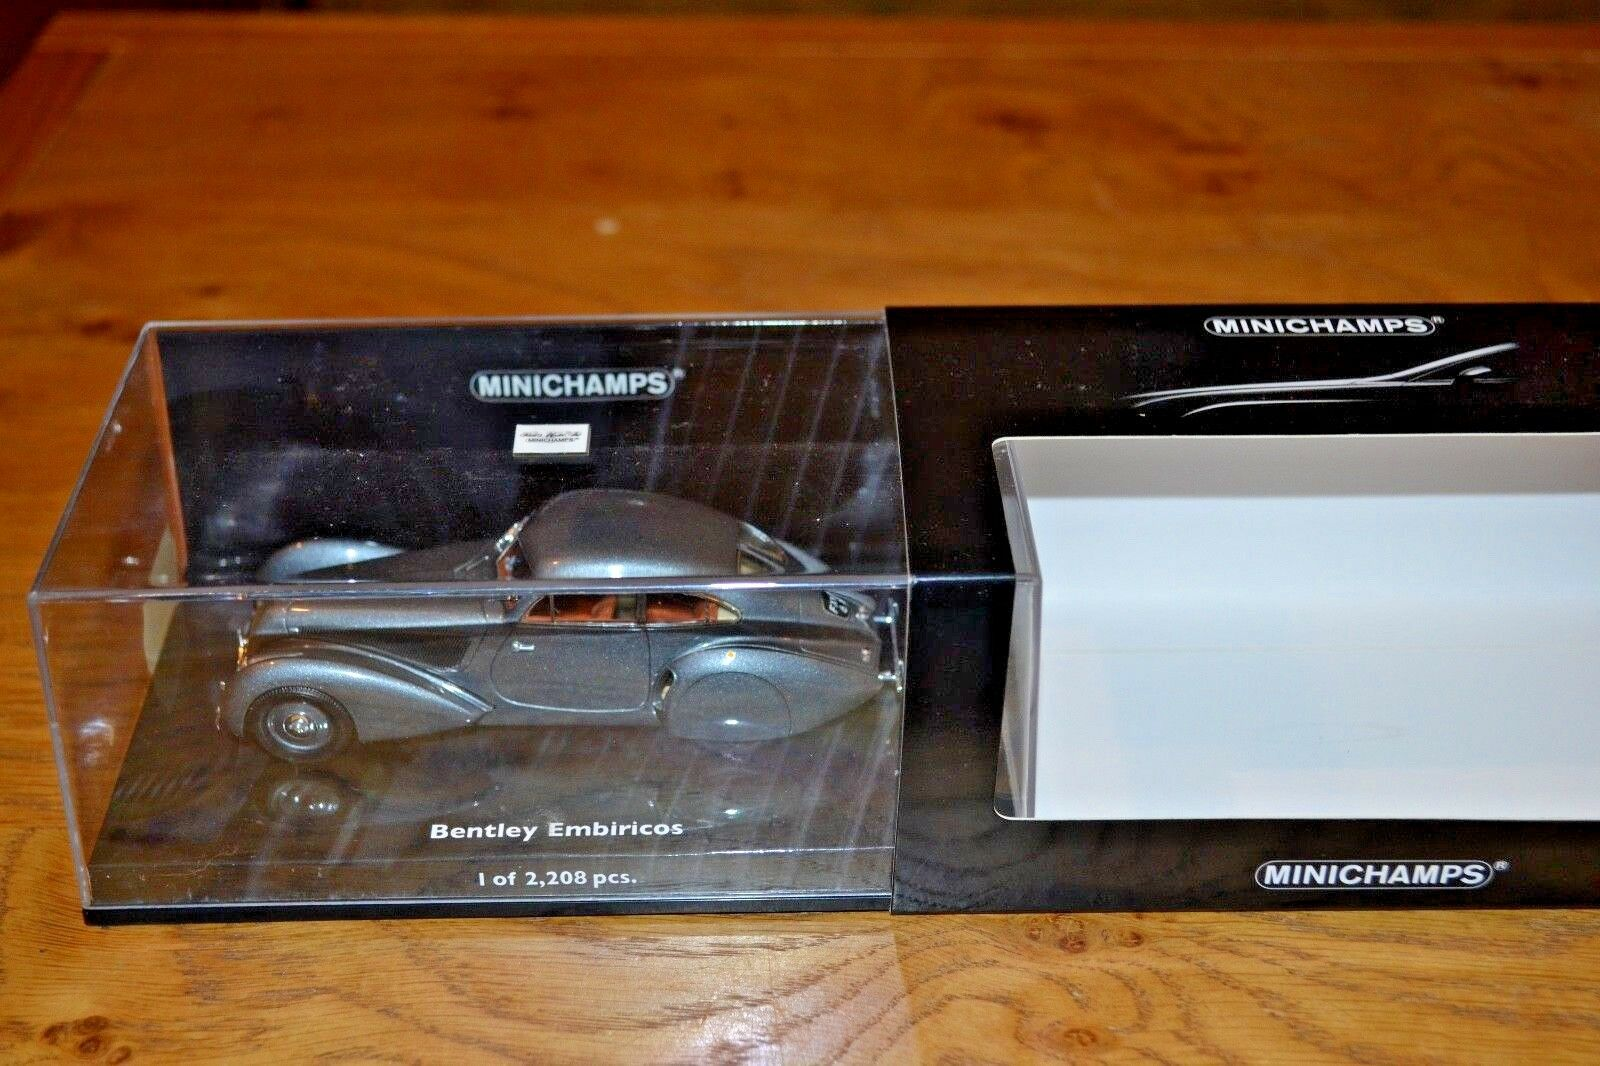 MINICHAMPS 1 43 BENTLEY EMBIRICOS 1939 Comme neuf CONDITION